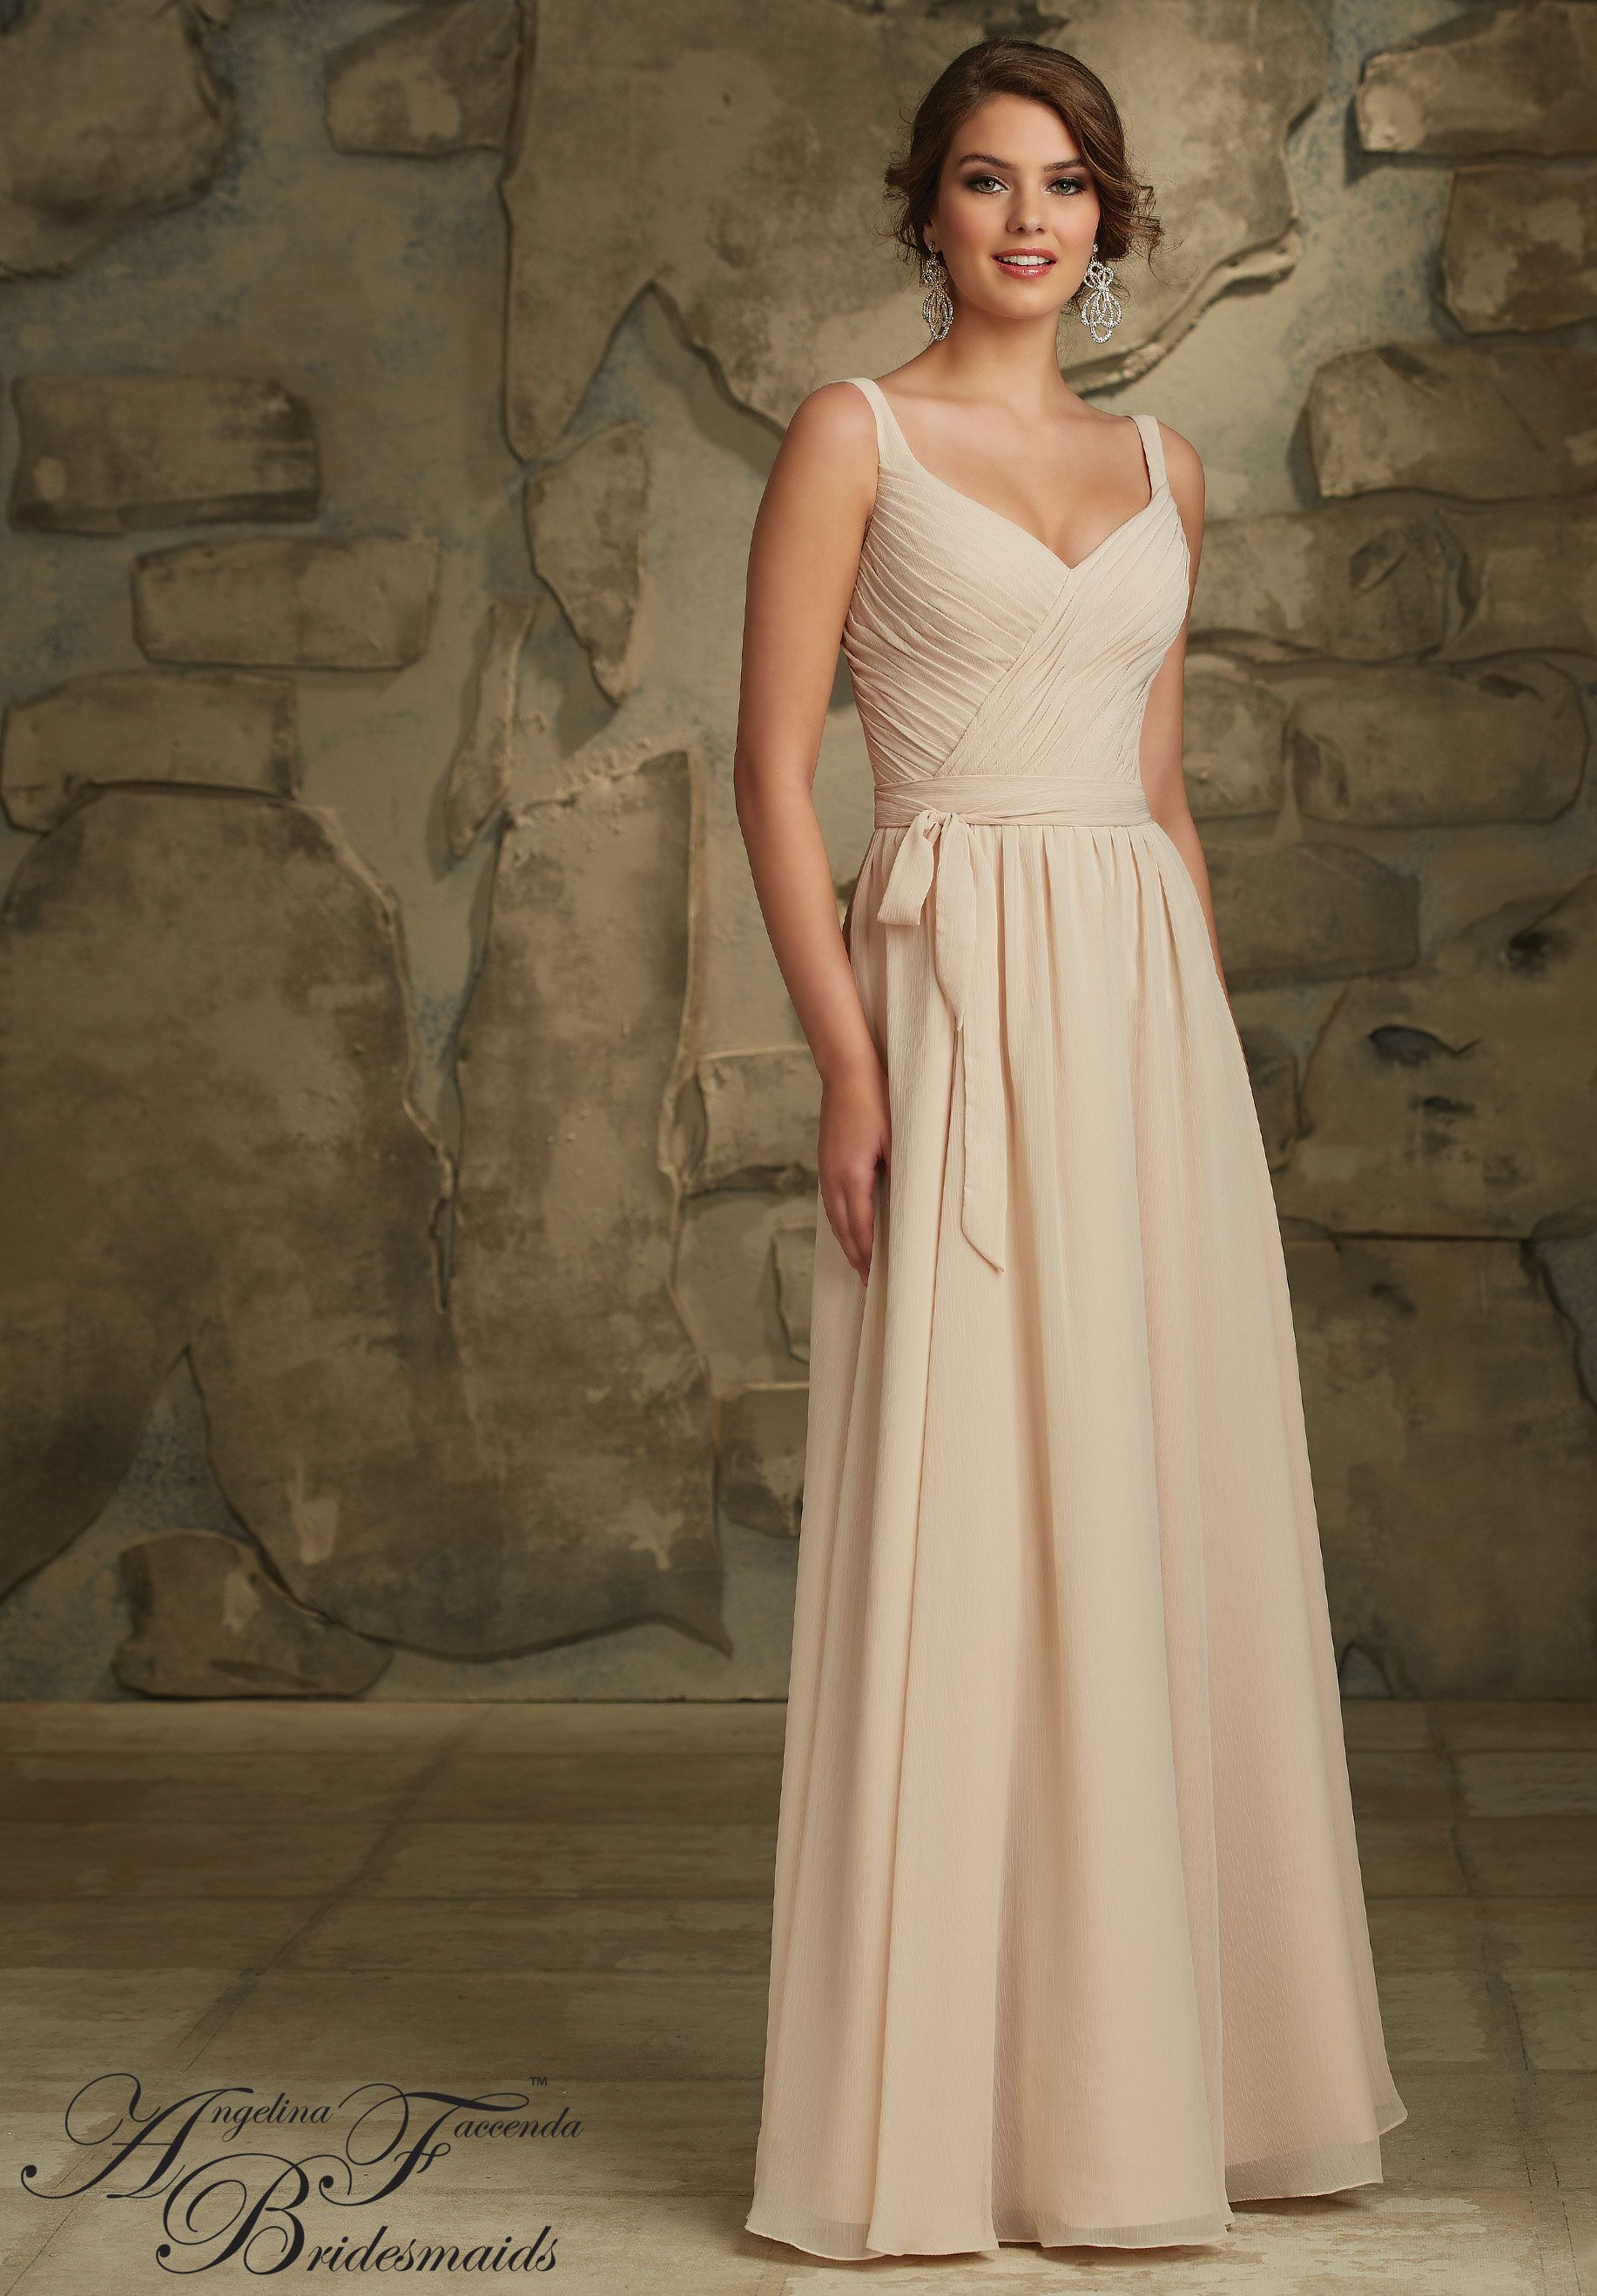 6dcb43267922 Bridesmaids Dresses by Angelina Feccenda Luxe Chiffon Zipper Back. Shown in  Champagne. Available in all Luxe Chiffon Colors.